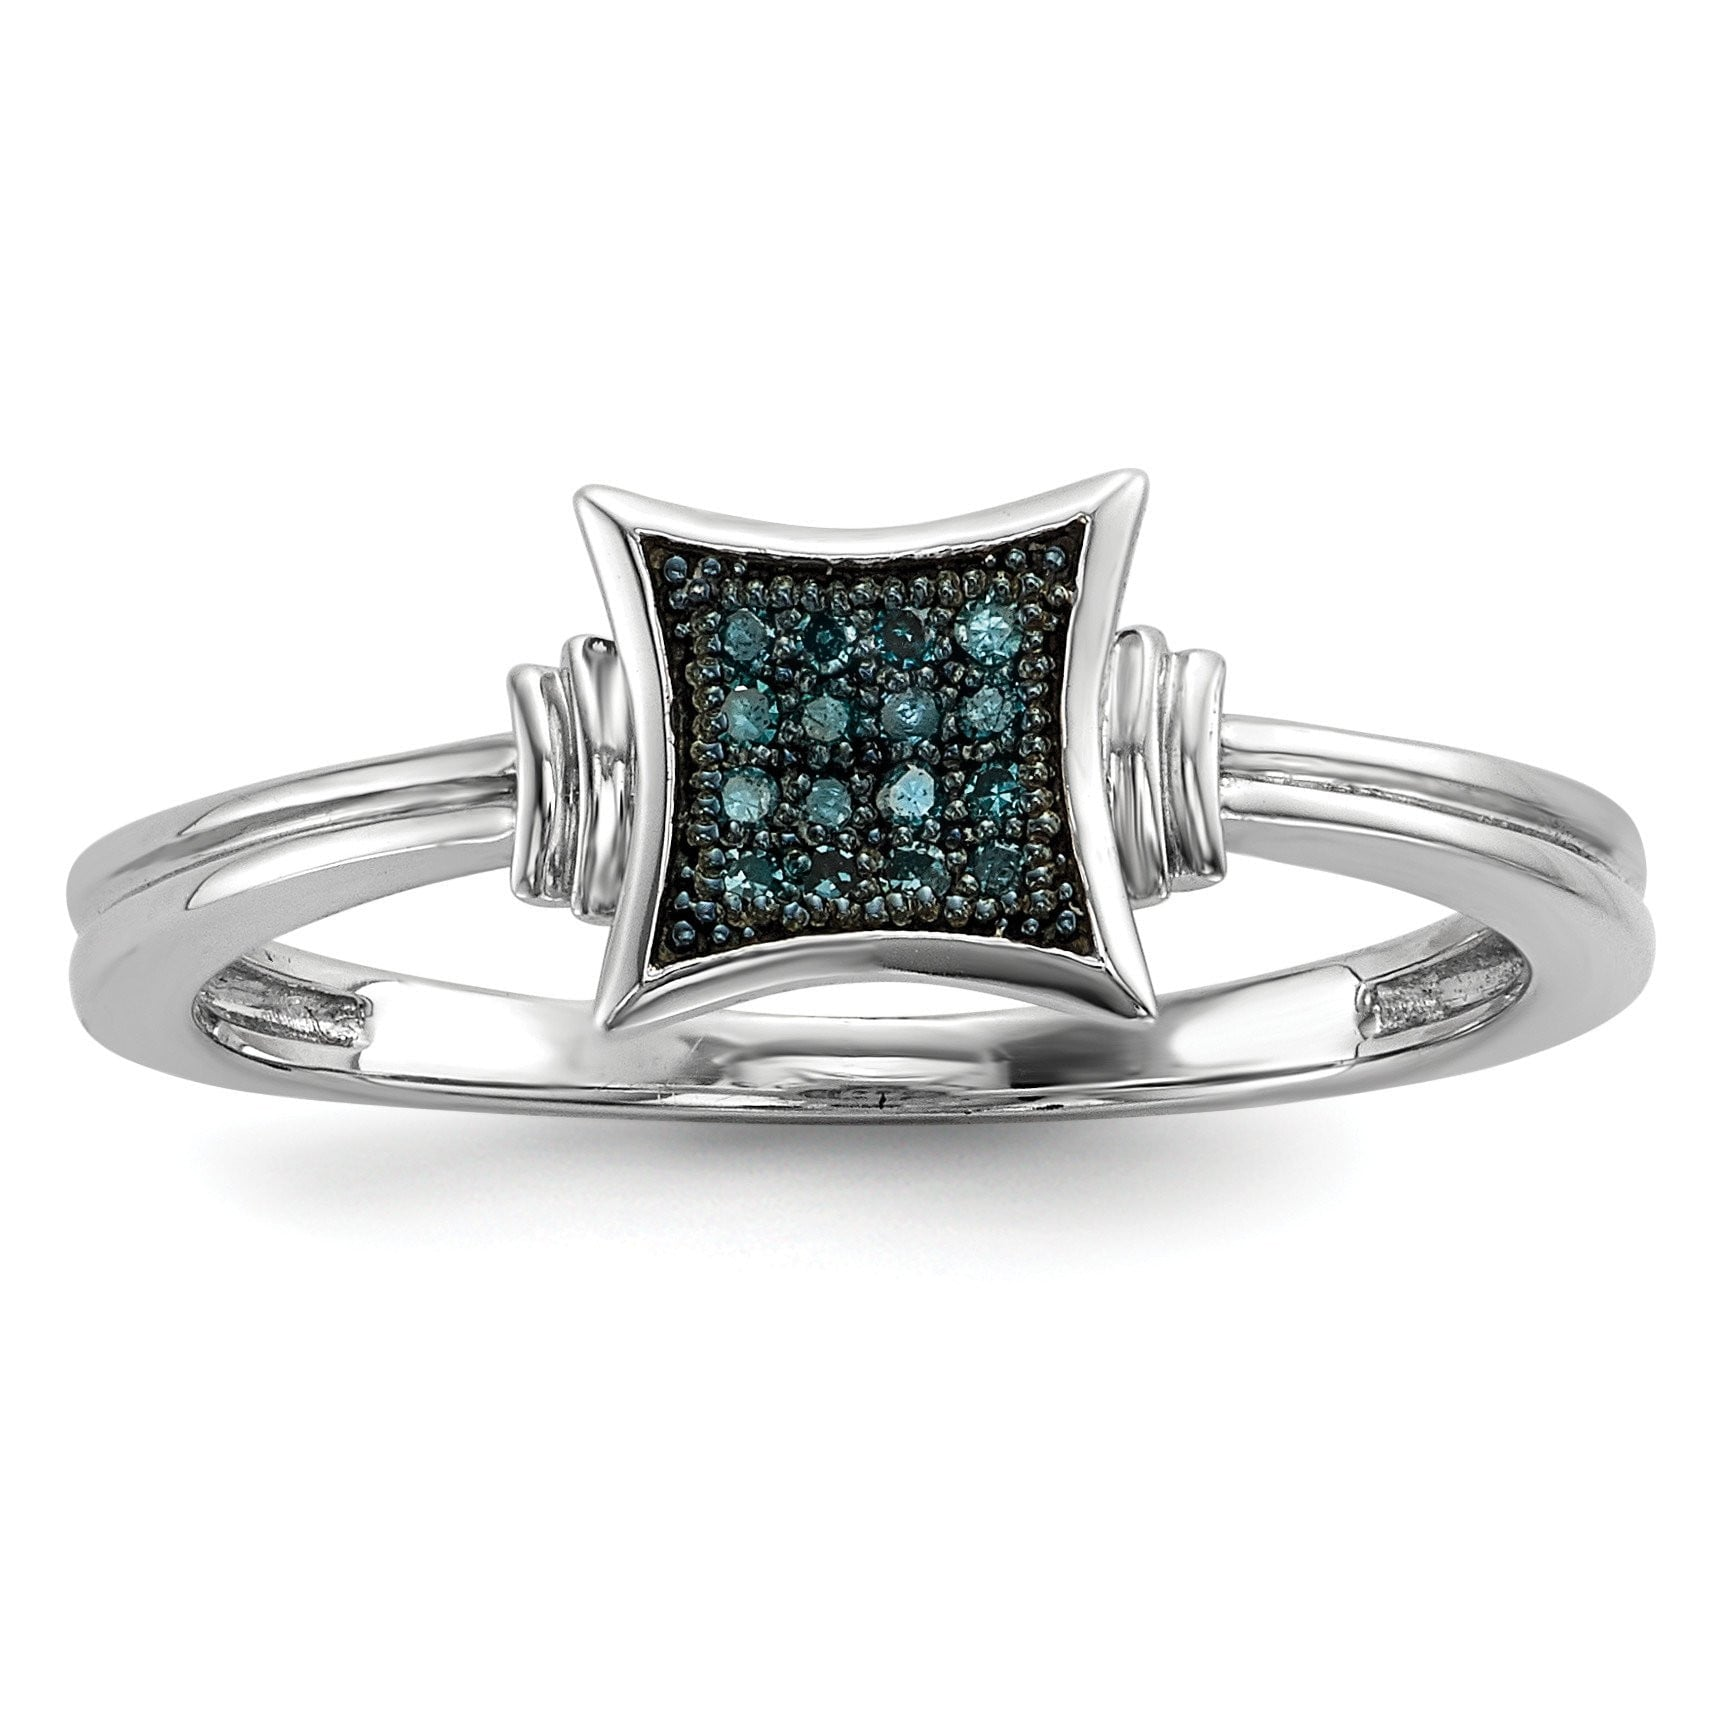 Sterling Silver with White/Blue Diamonds Square Ring - shirin-diamonds